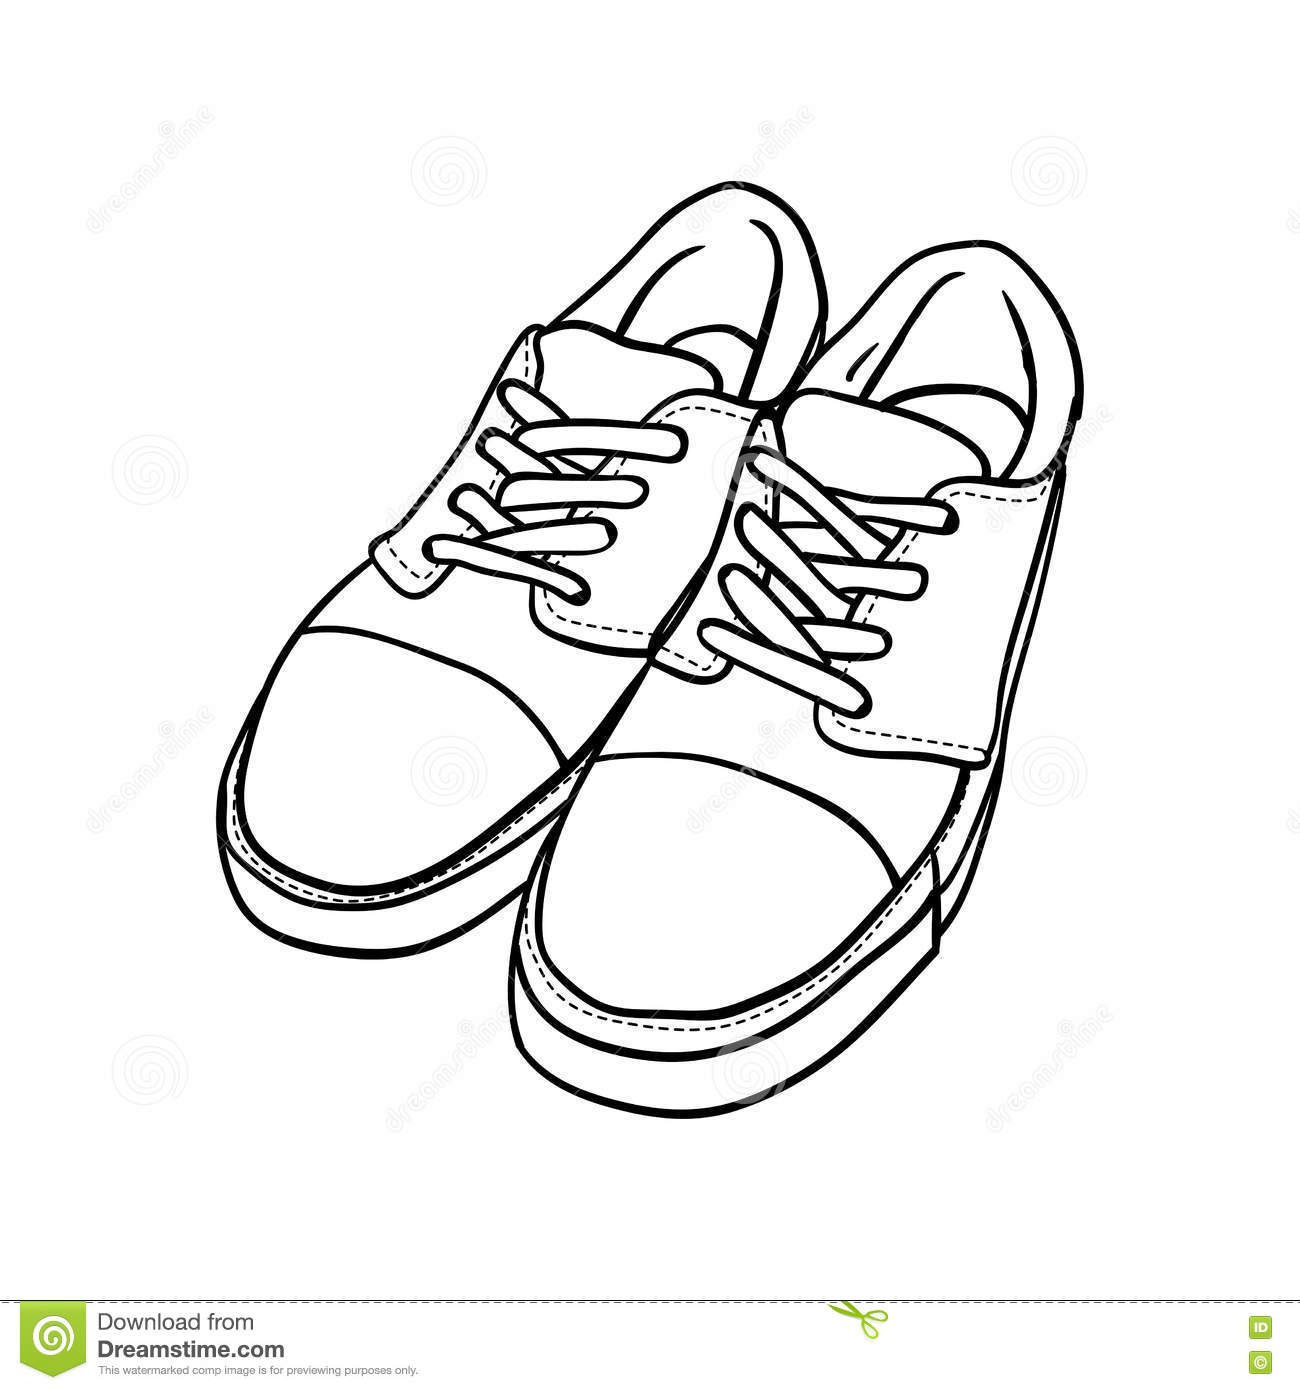 Converse shoes coloring pages - e-pic.info